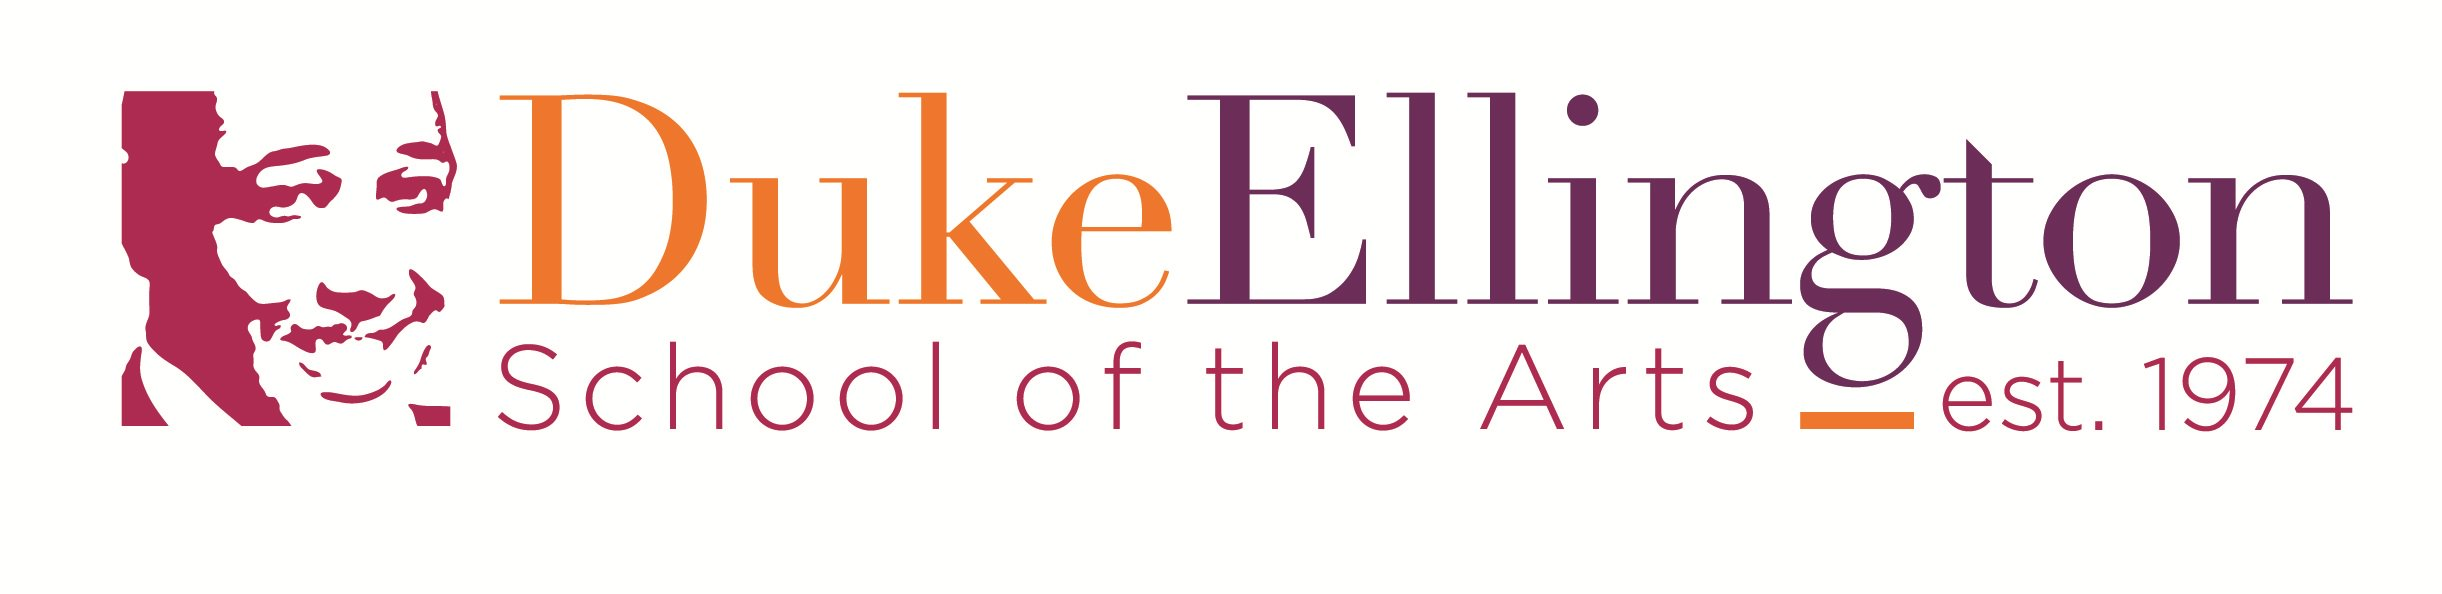 Duke Ellington logo